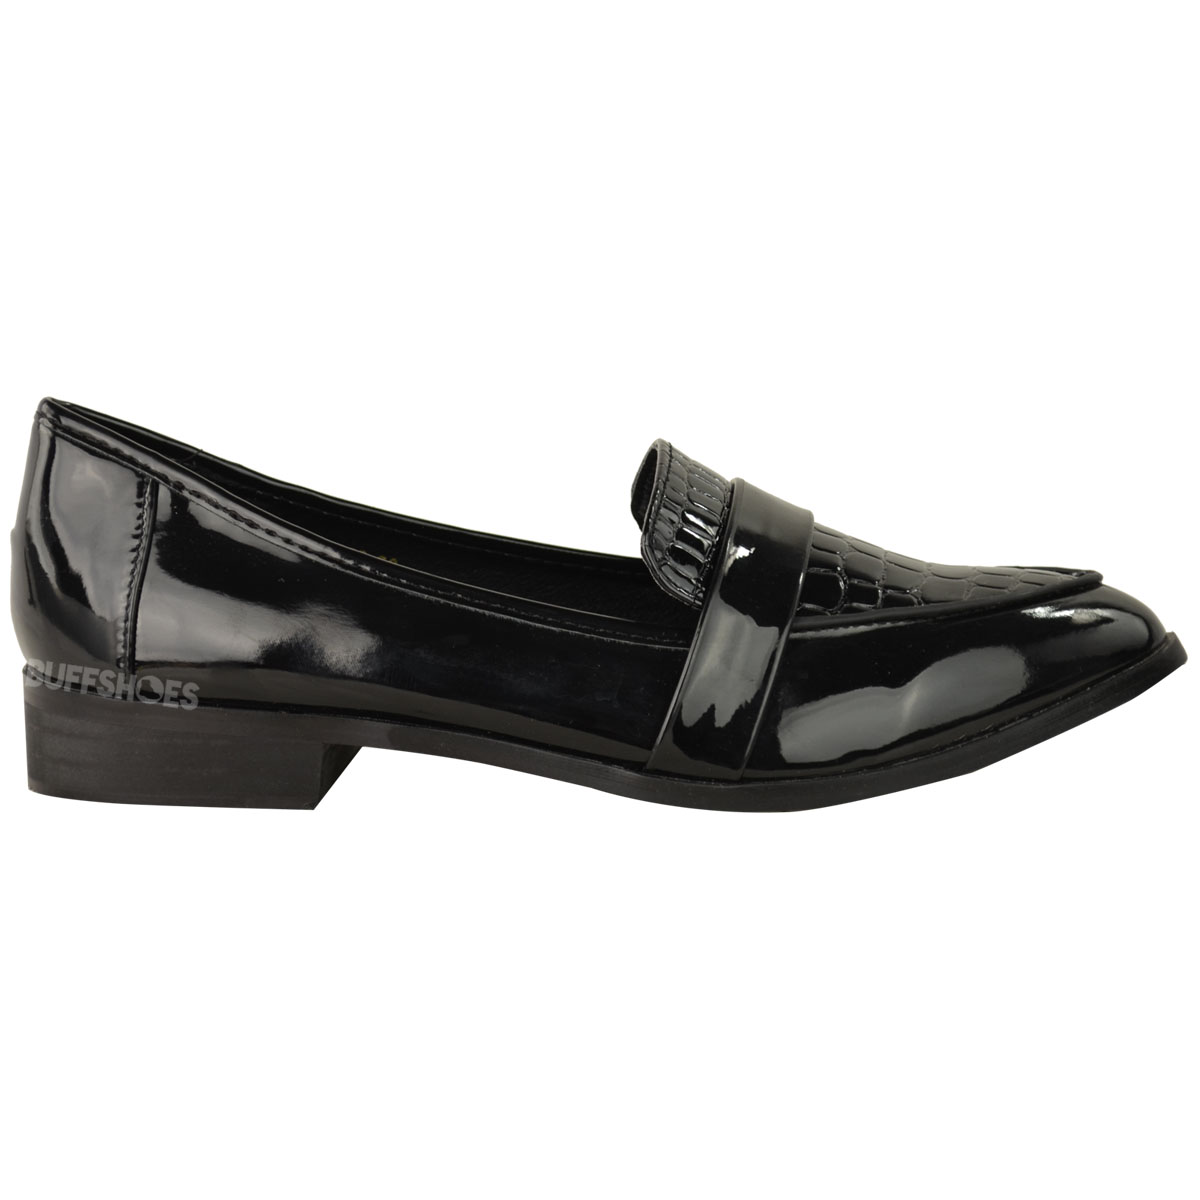 Free shipping BOTH ways on Loafers, Girls, from our vast selection of styles. Fast delivery, and 24/7/ real-person service with a smile. Click or call